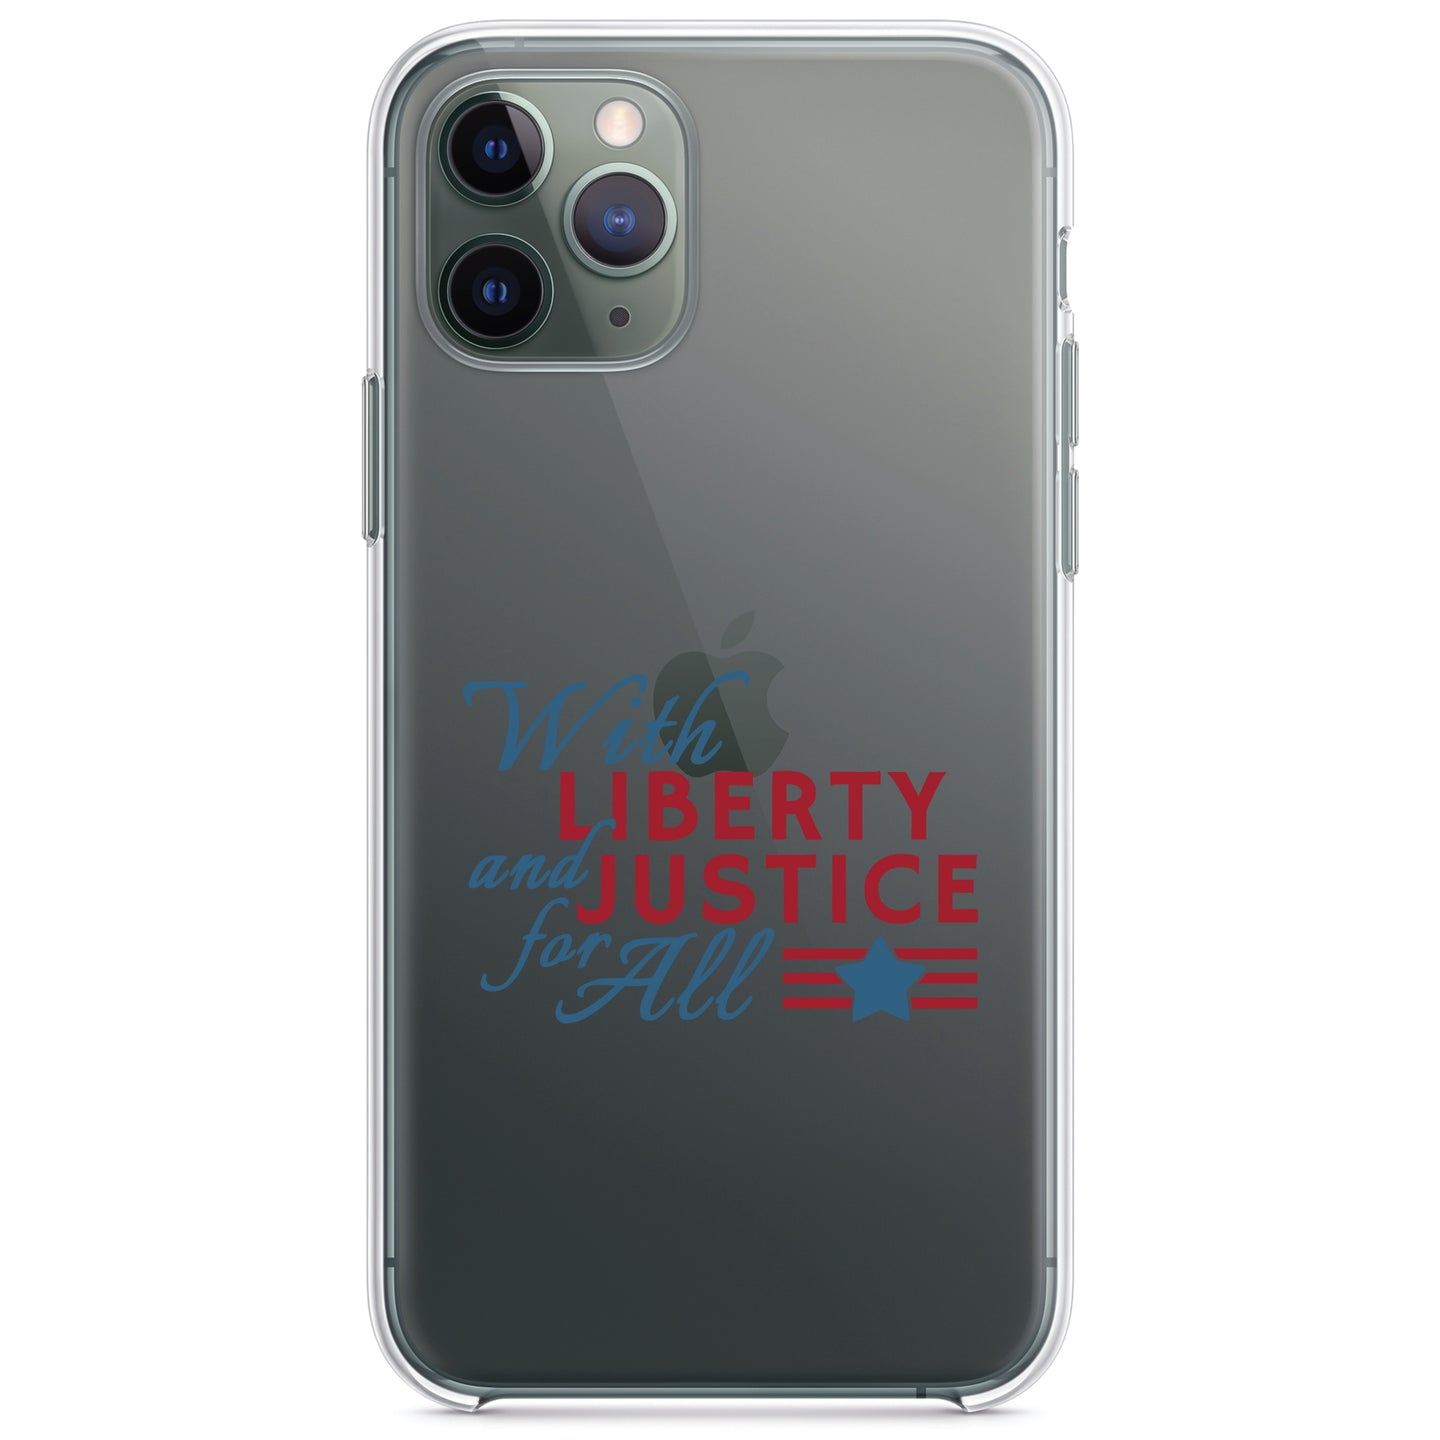 DistinctInk® Clear Shockproof Hybrid Case for Apple iPhone / Samsung Galaxy / Google Pixel - With Liberty and Justice For All